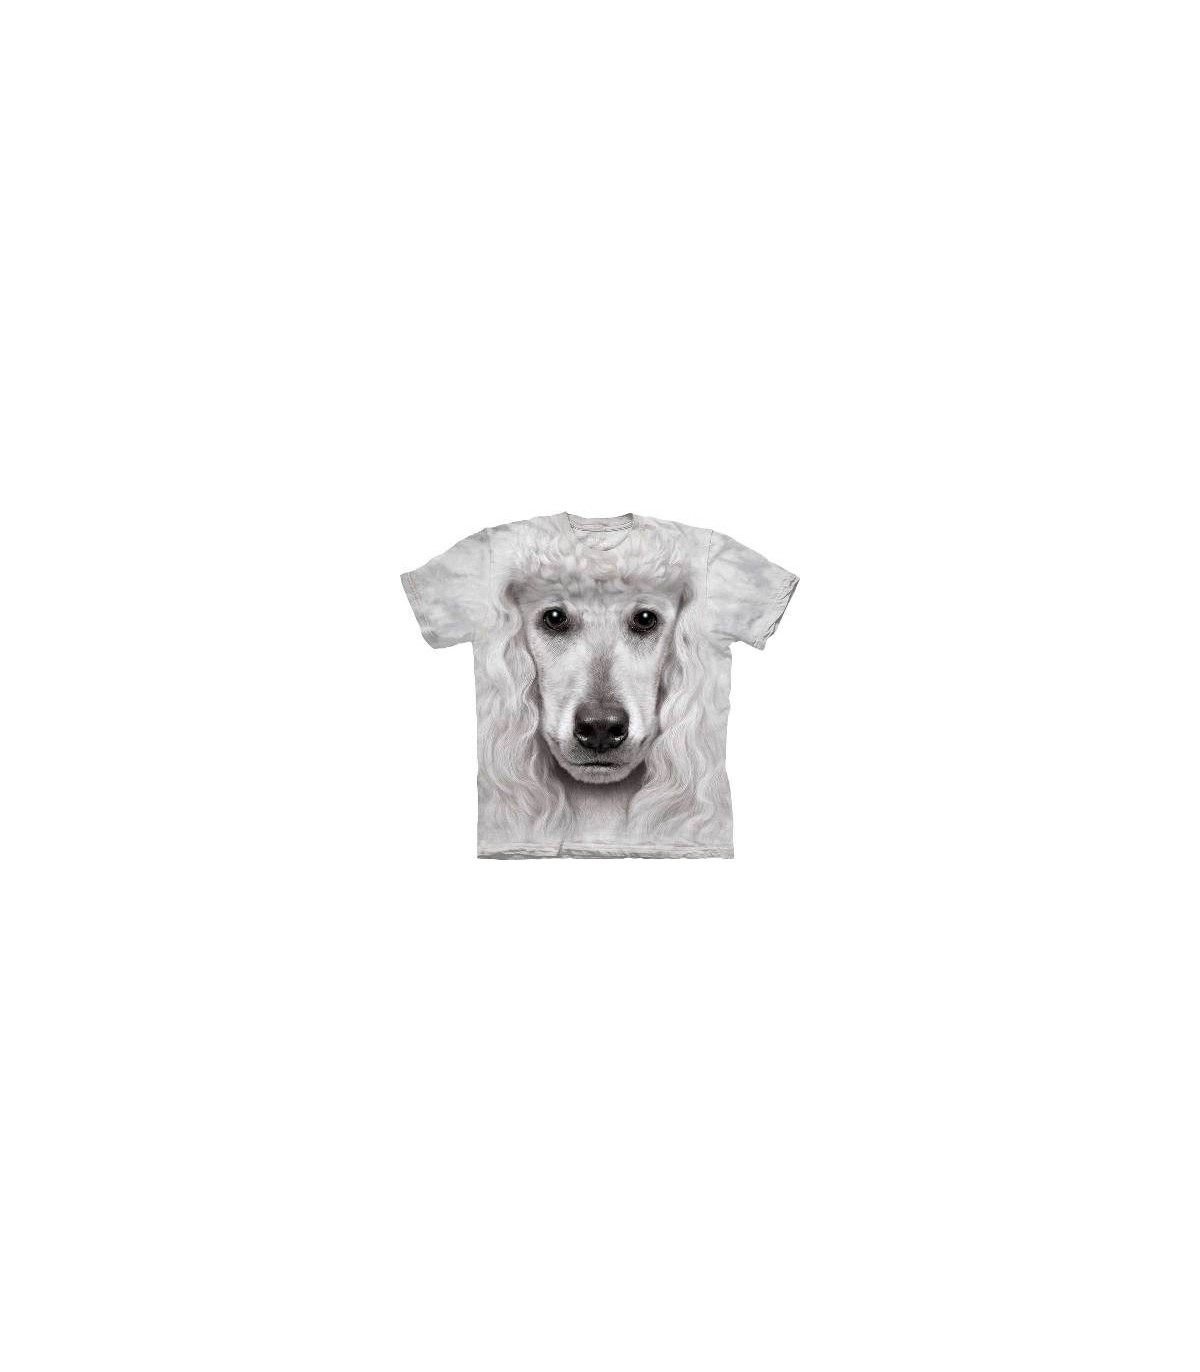 Black Lab Face Dogs T Shirt Adult Unisex The Mountain